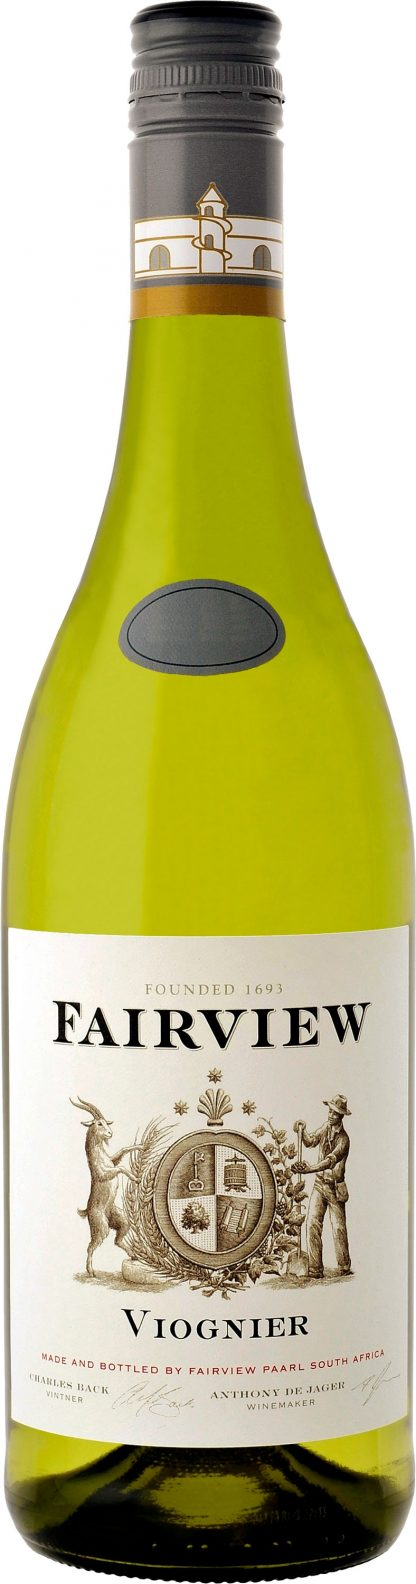 Fairview - Viognier 2016 75cl Bottle